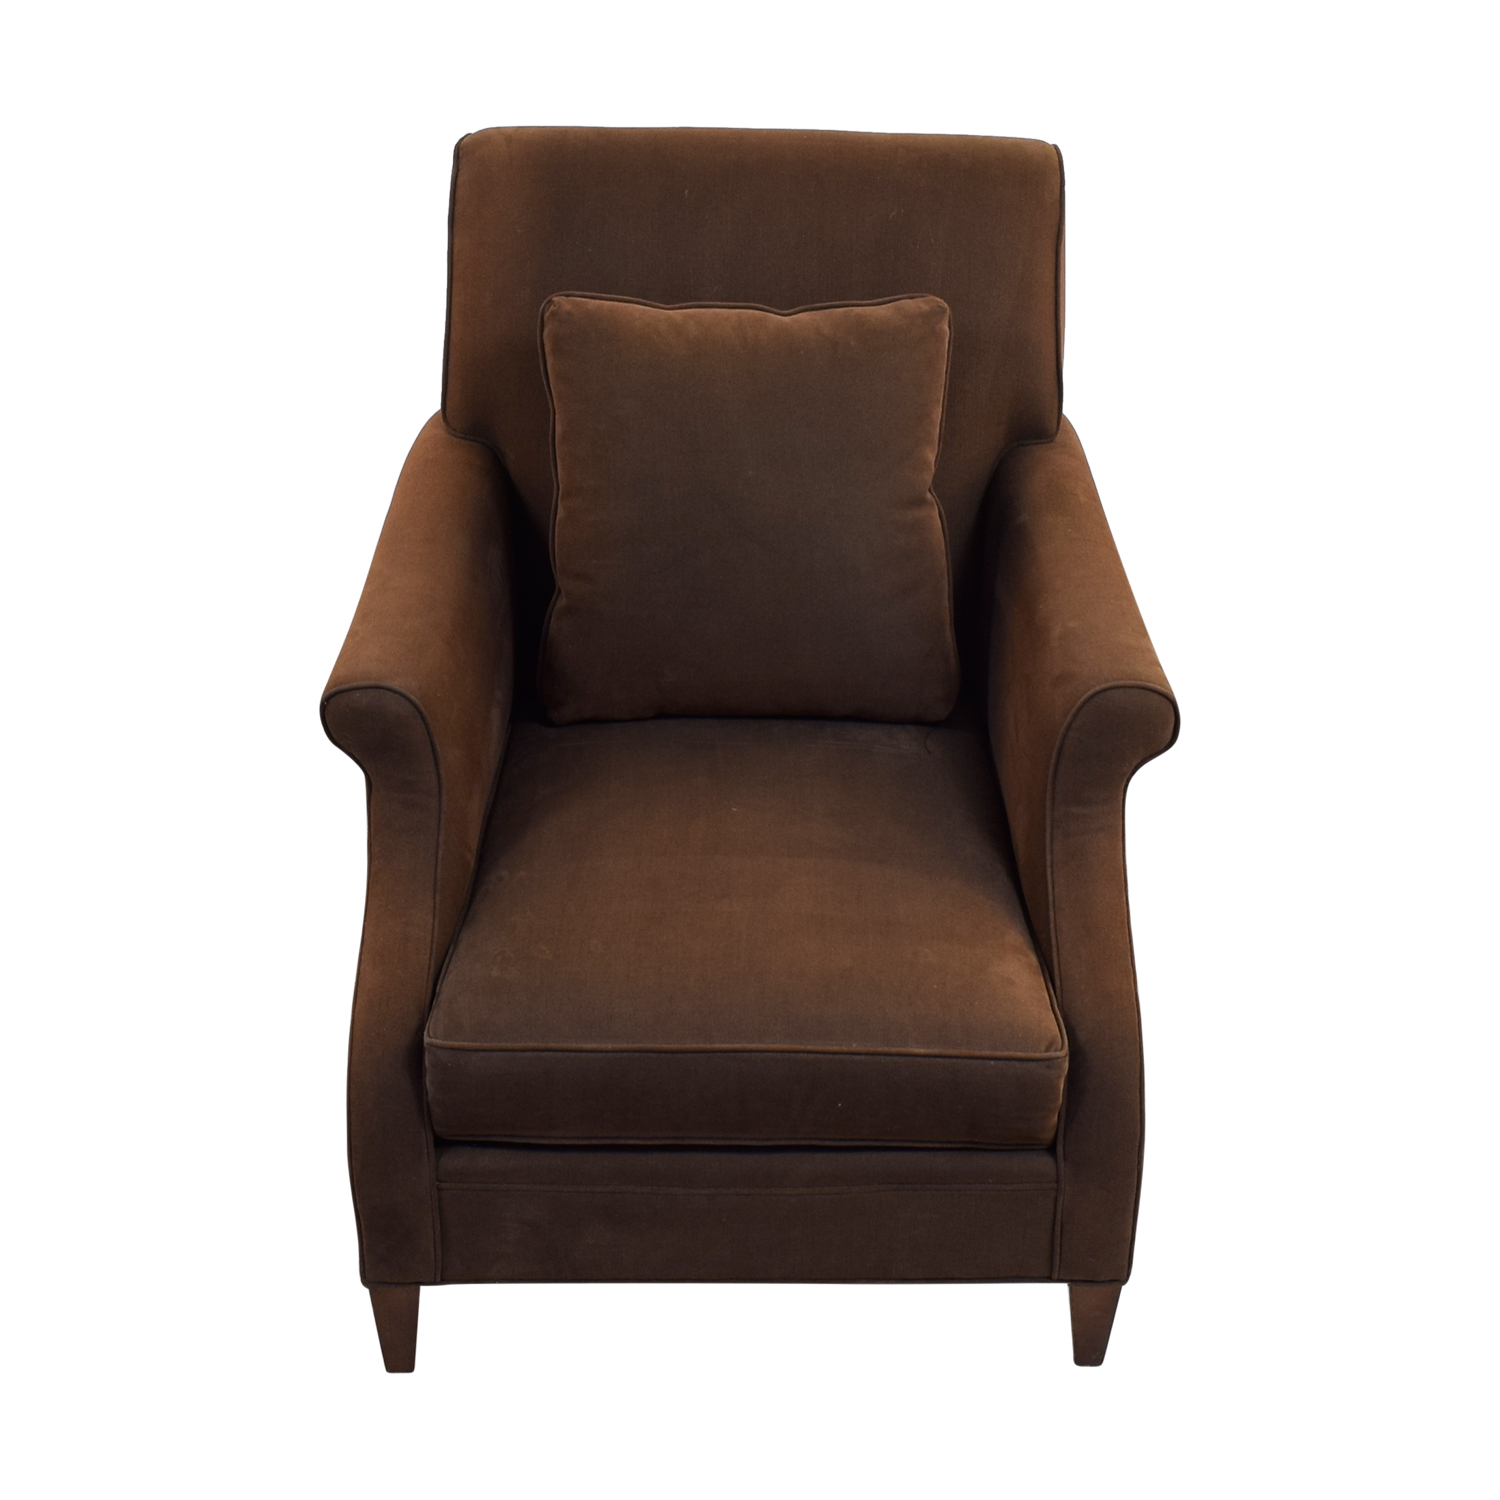 Mitchell Gold + Bob Williams Deep Seated Brown Armchair Mitchell Gold + Bob Williams